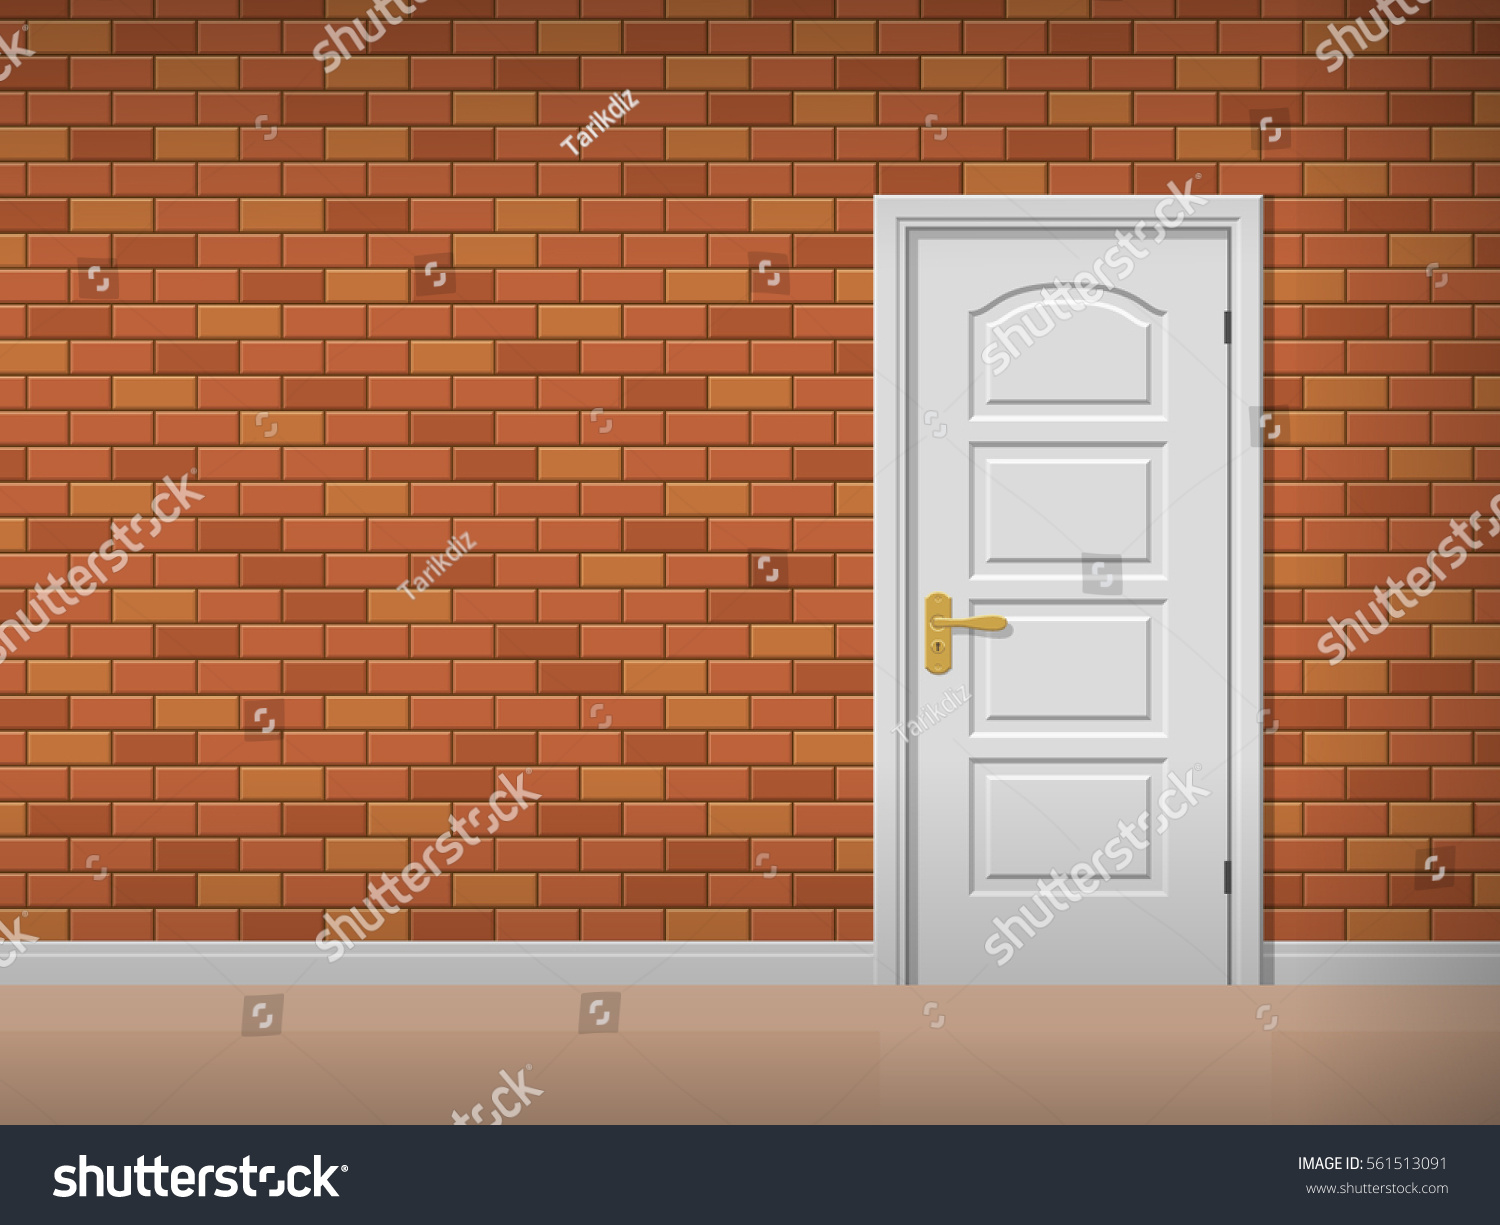 Room Interior With Brick Wall And White Door